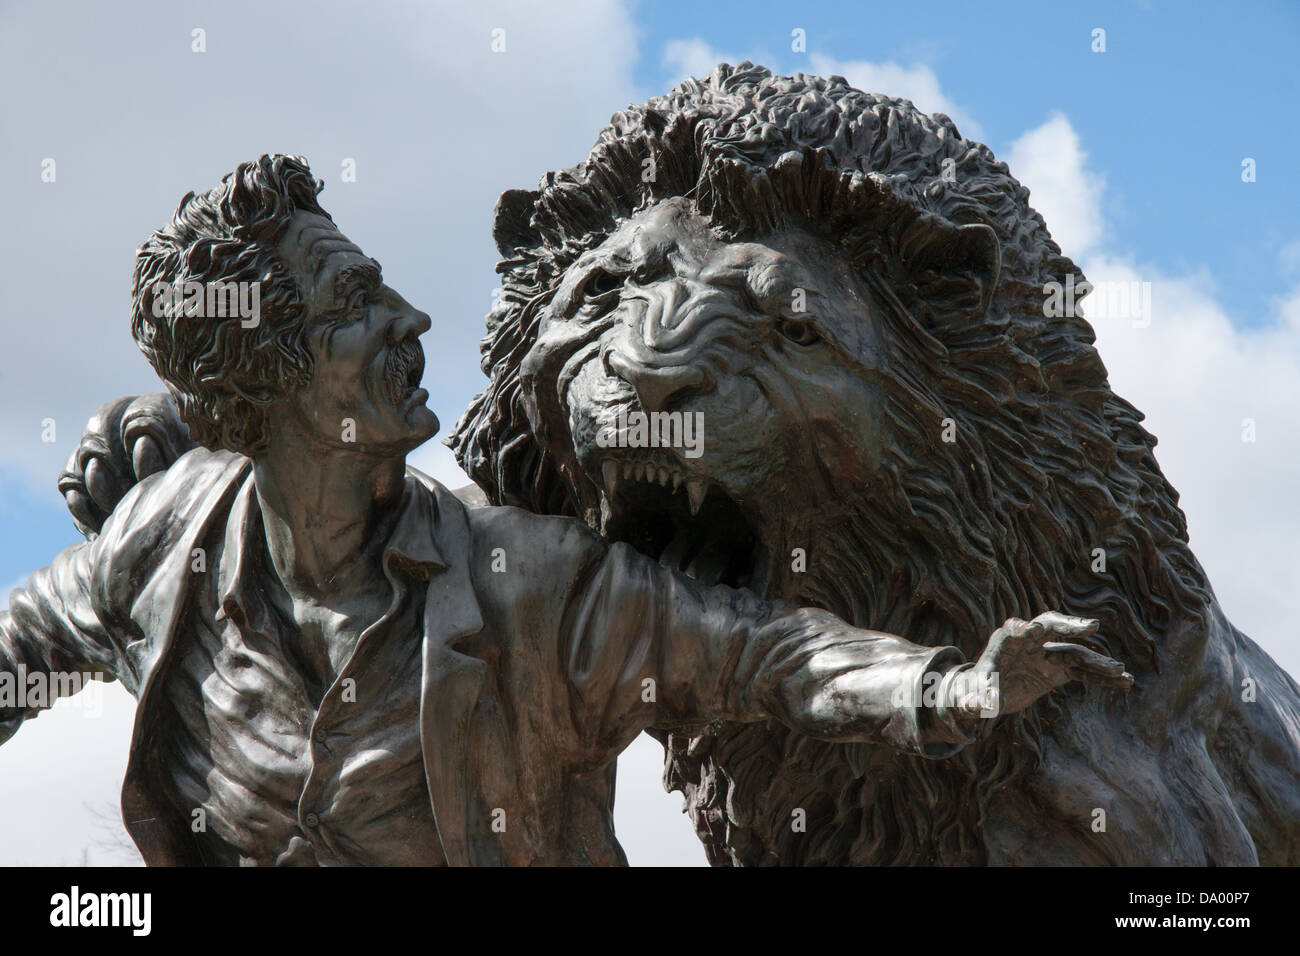 Detail from the statue at the David Livingstone Centre, Blantyre, Scotland of the explorer being attacked by a lion - Stock Image